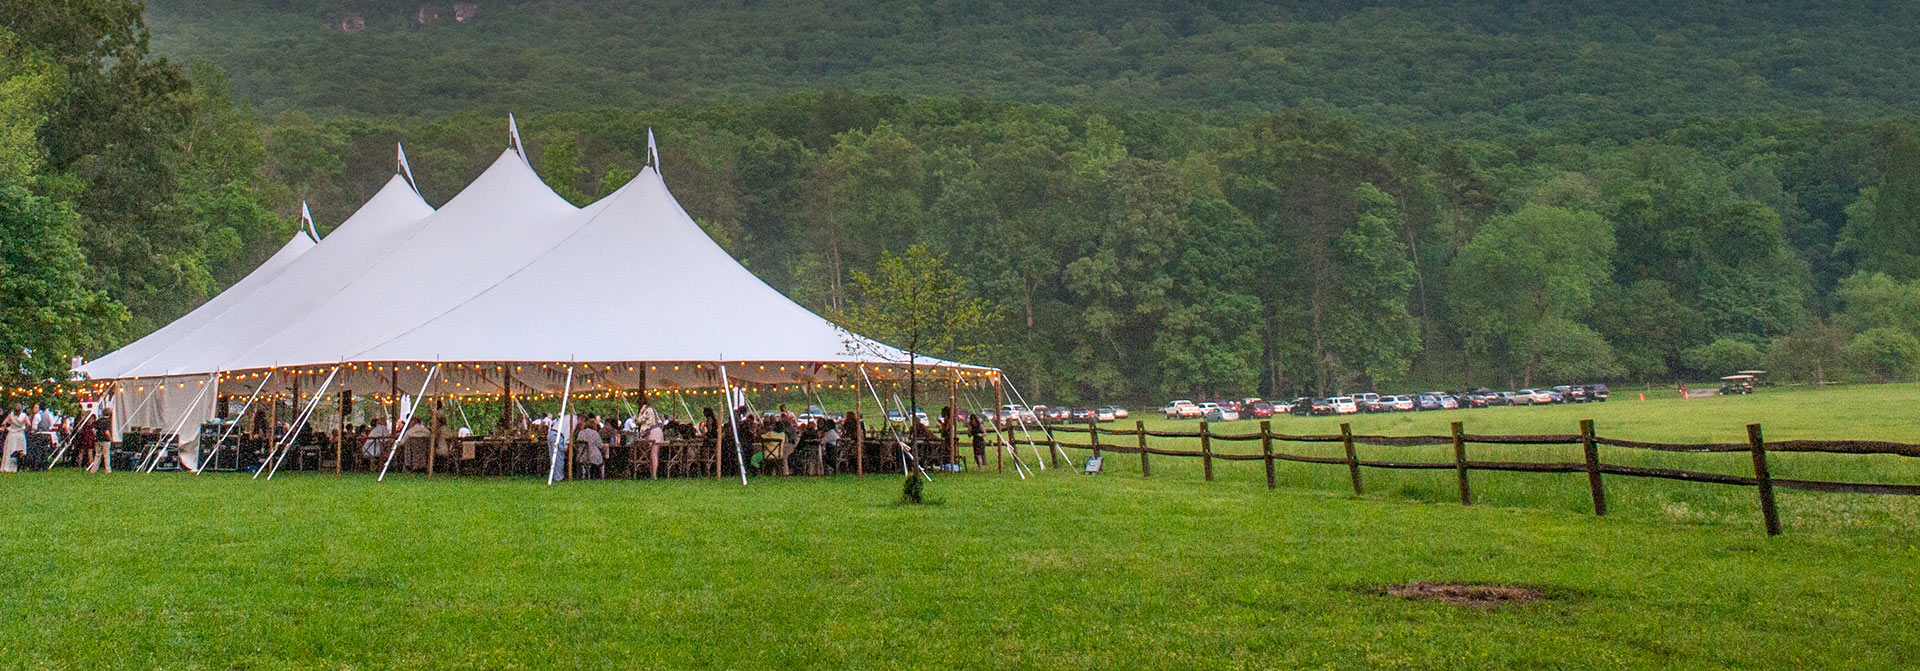 If you're looking for tent companies near me, Chattanooga Tent can help! This high peak tent was the perfect touch for this Chattanooga event.